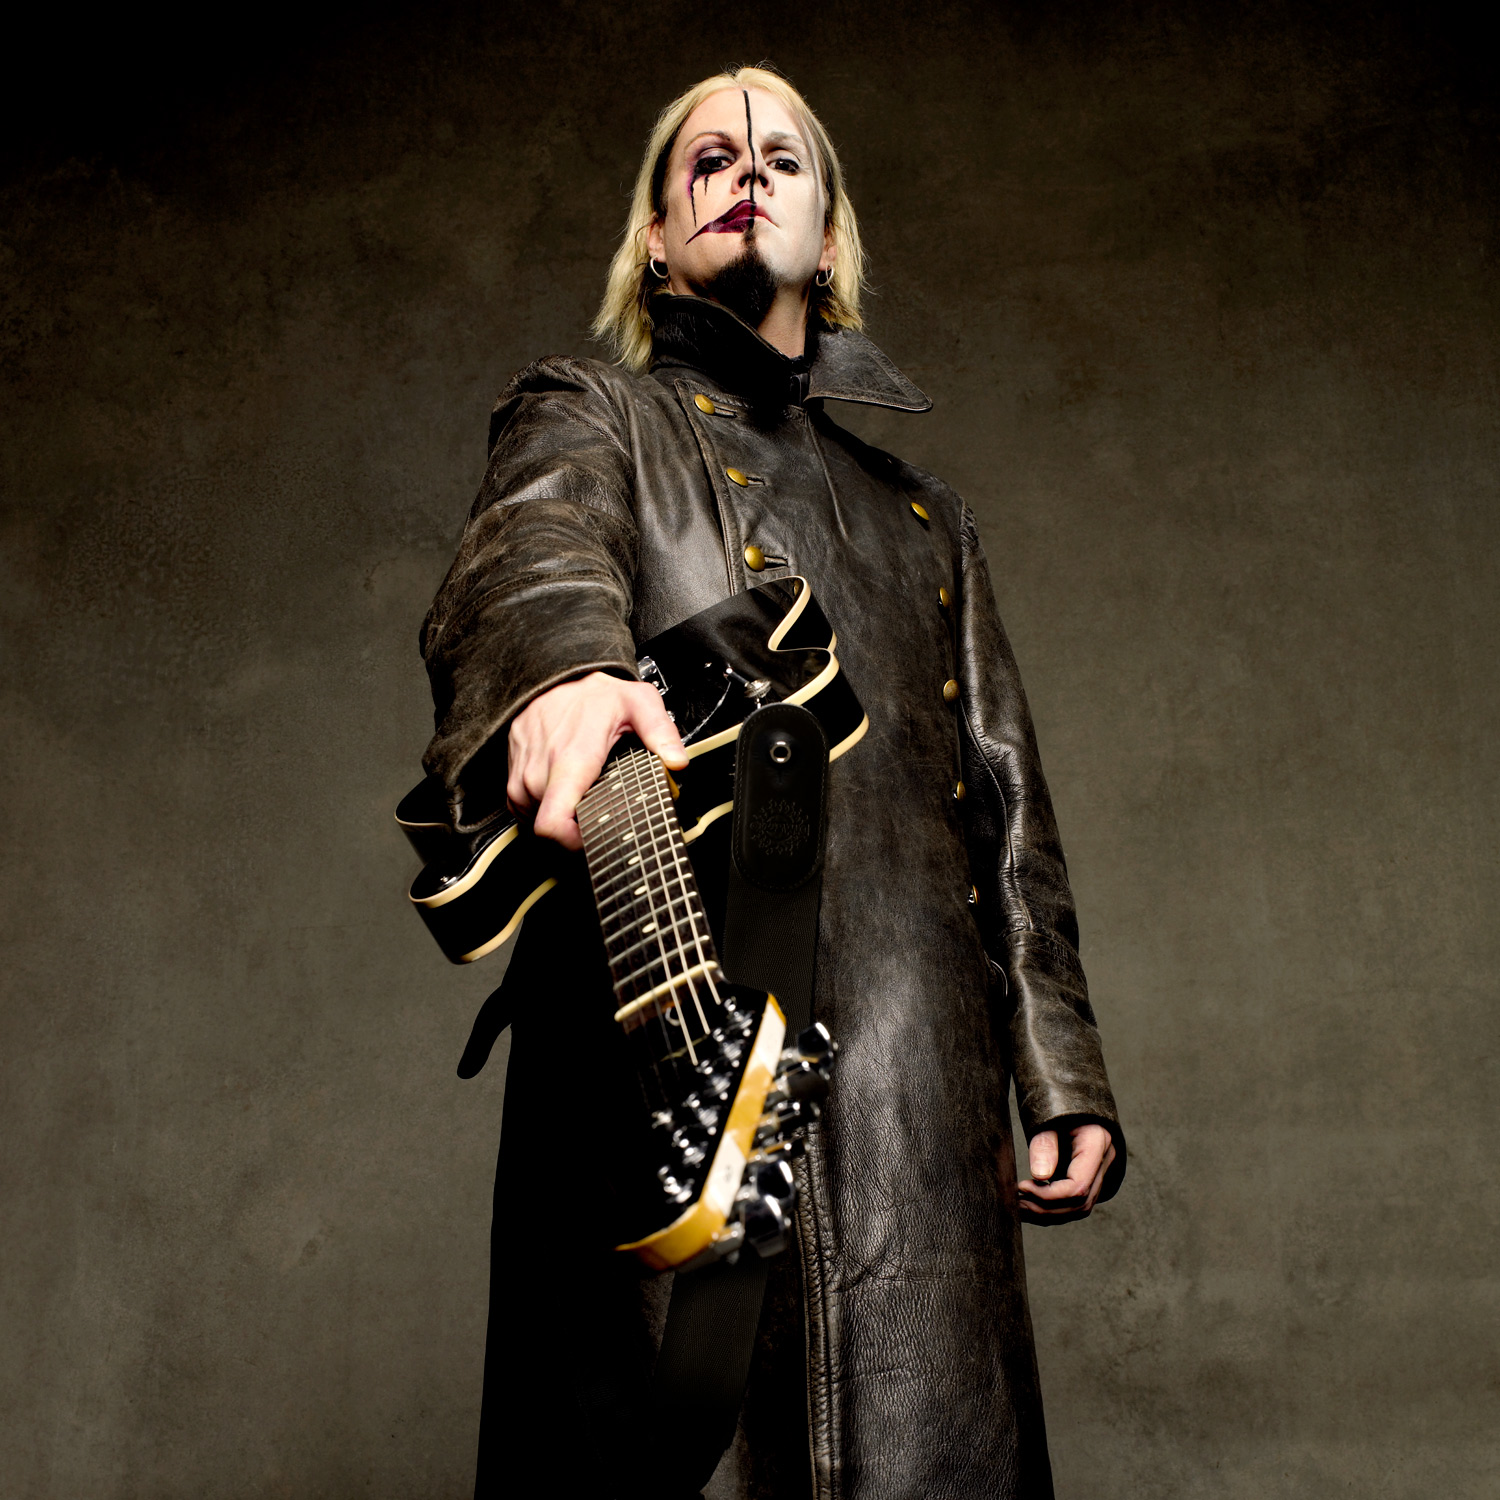 hight resolution of john 5 photo by larry dimarzio